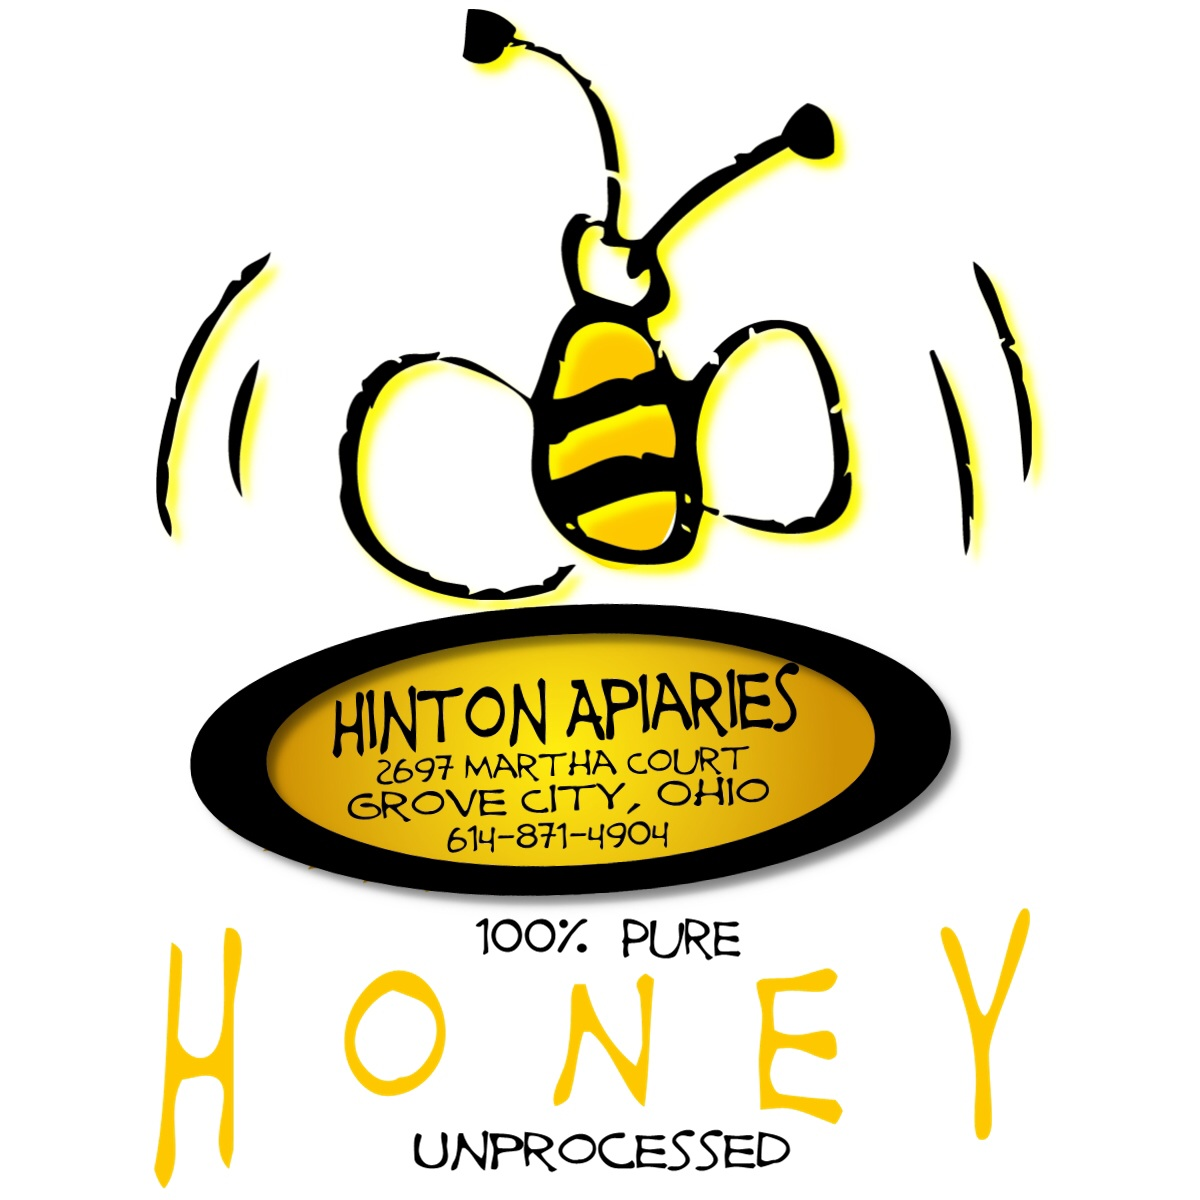 Hinton Apiaries